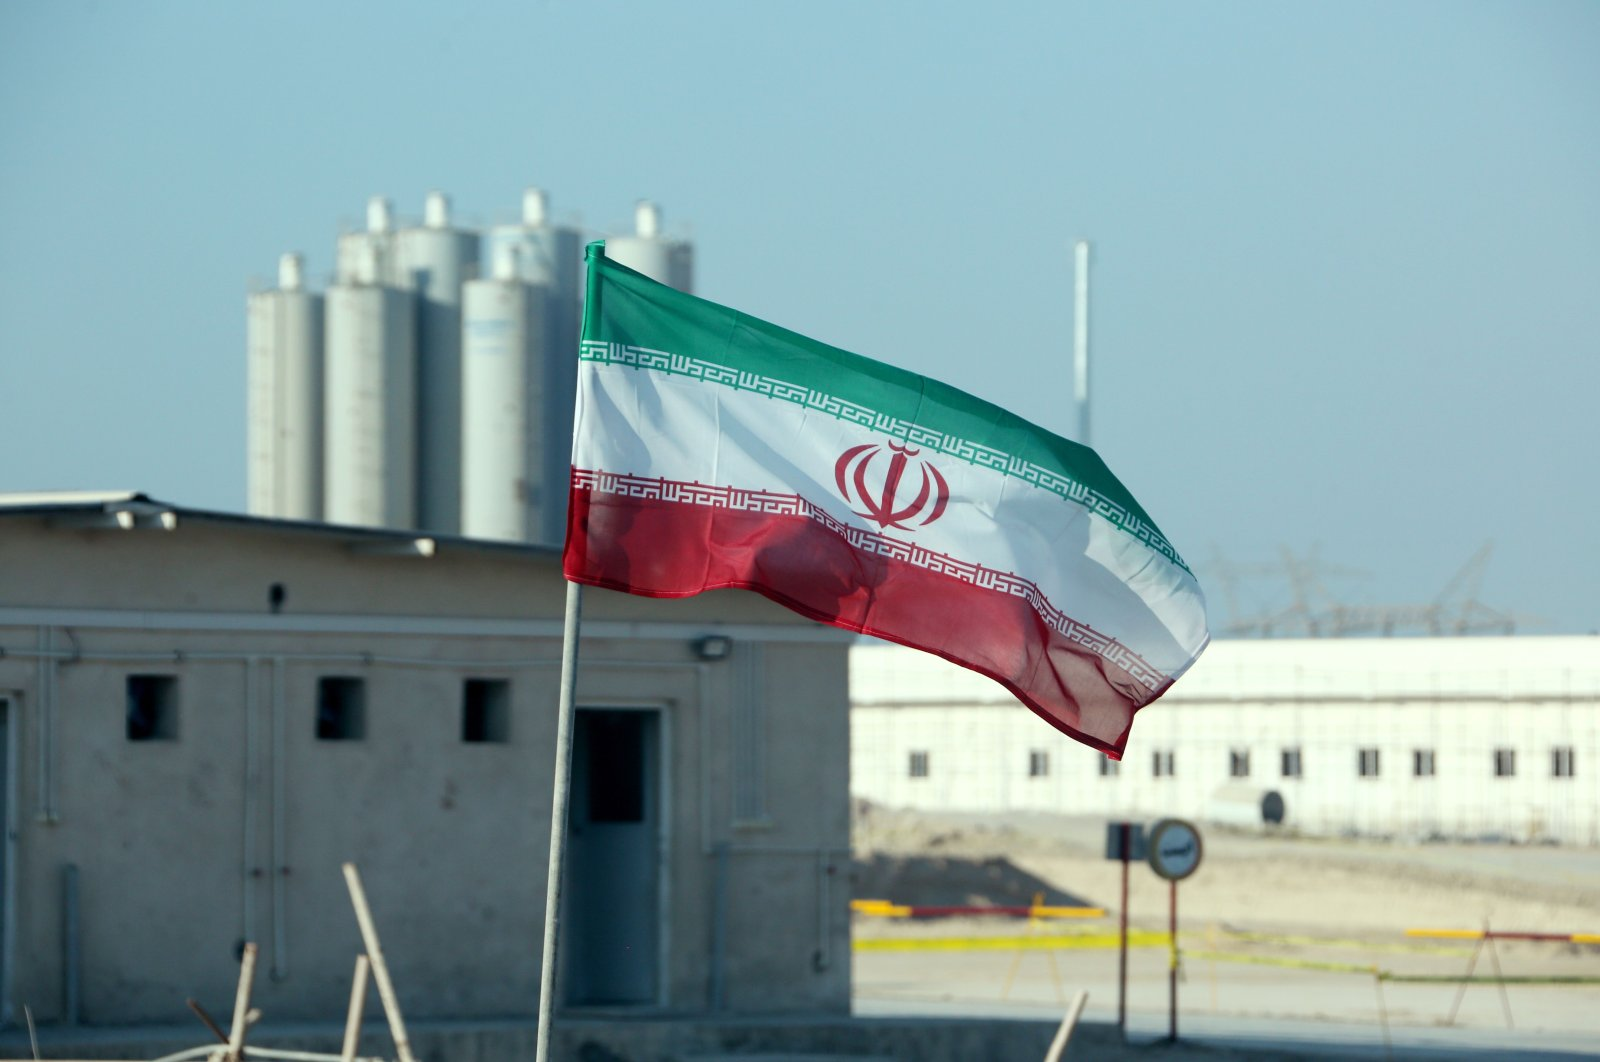 An Iranian flag at Iran's Bushehr nuclear power plant during an official ceremony to kick-start work on a second reactor at the facility, Nov. 10, 2019. (AFP Photo)